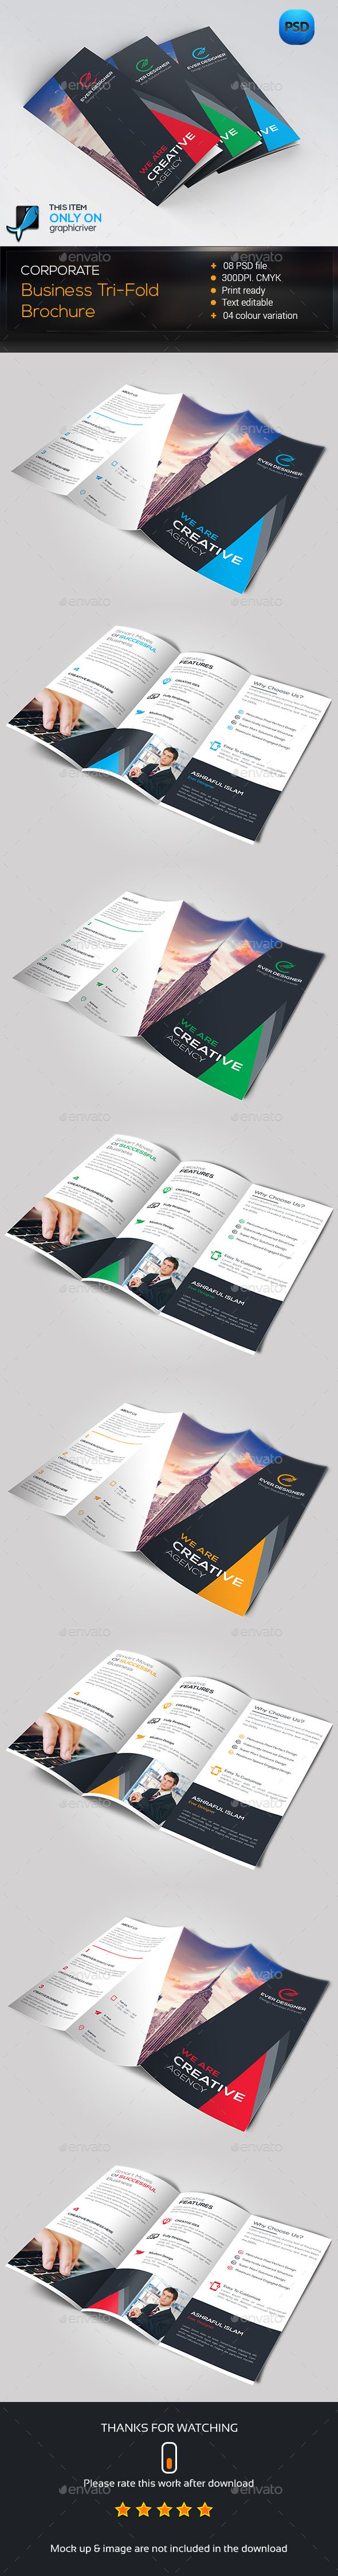 Trifold Brochure Template PSD #design Download: http://graphicriver.net/item/trifold-brochure/14286880?ref=ksioks